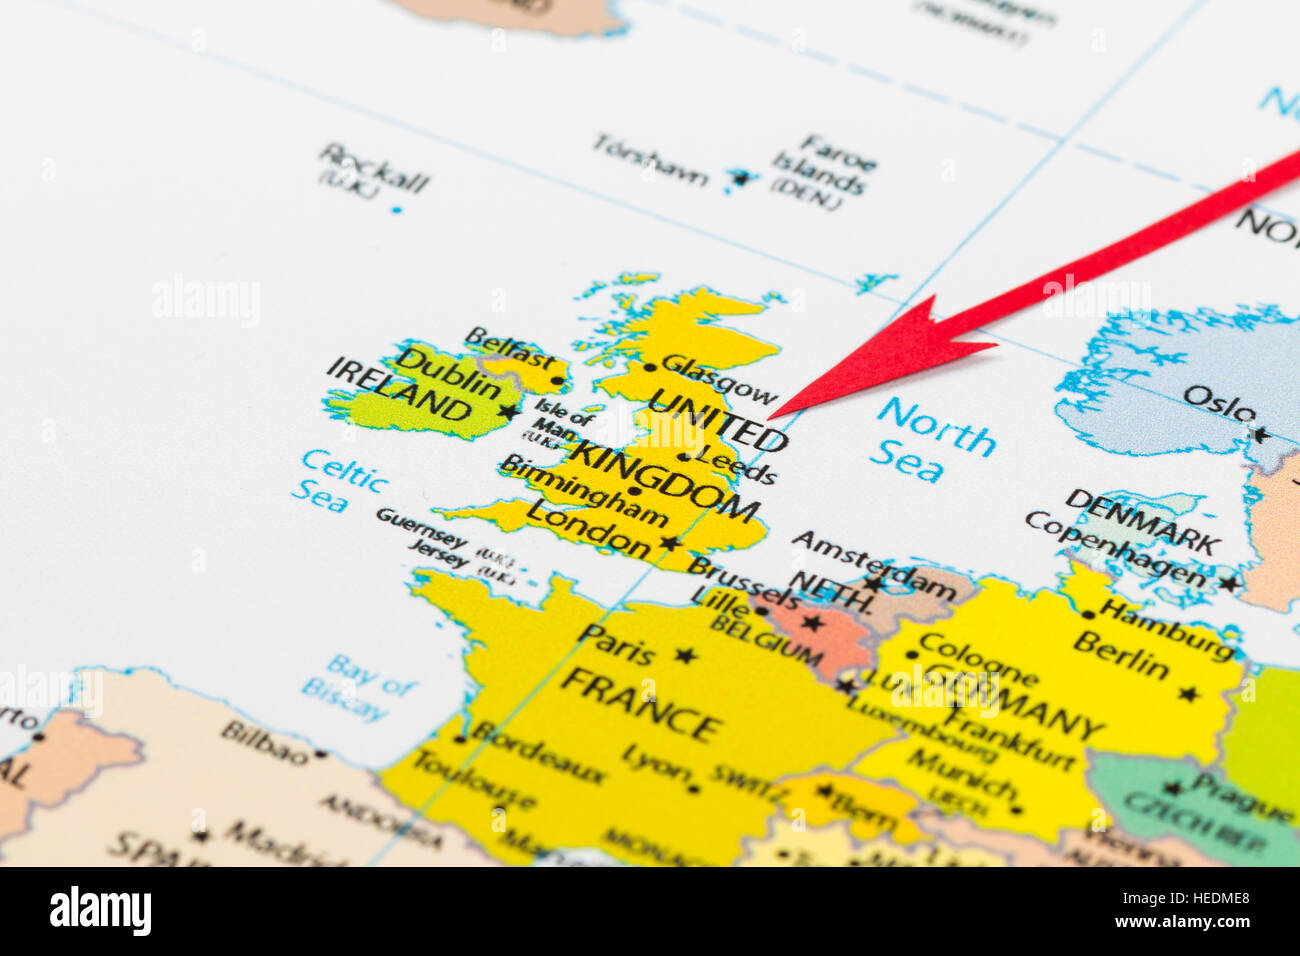 United Kingdom On The World Map.United Kingdom World Map Stock Photos United Kingdom World Map